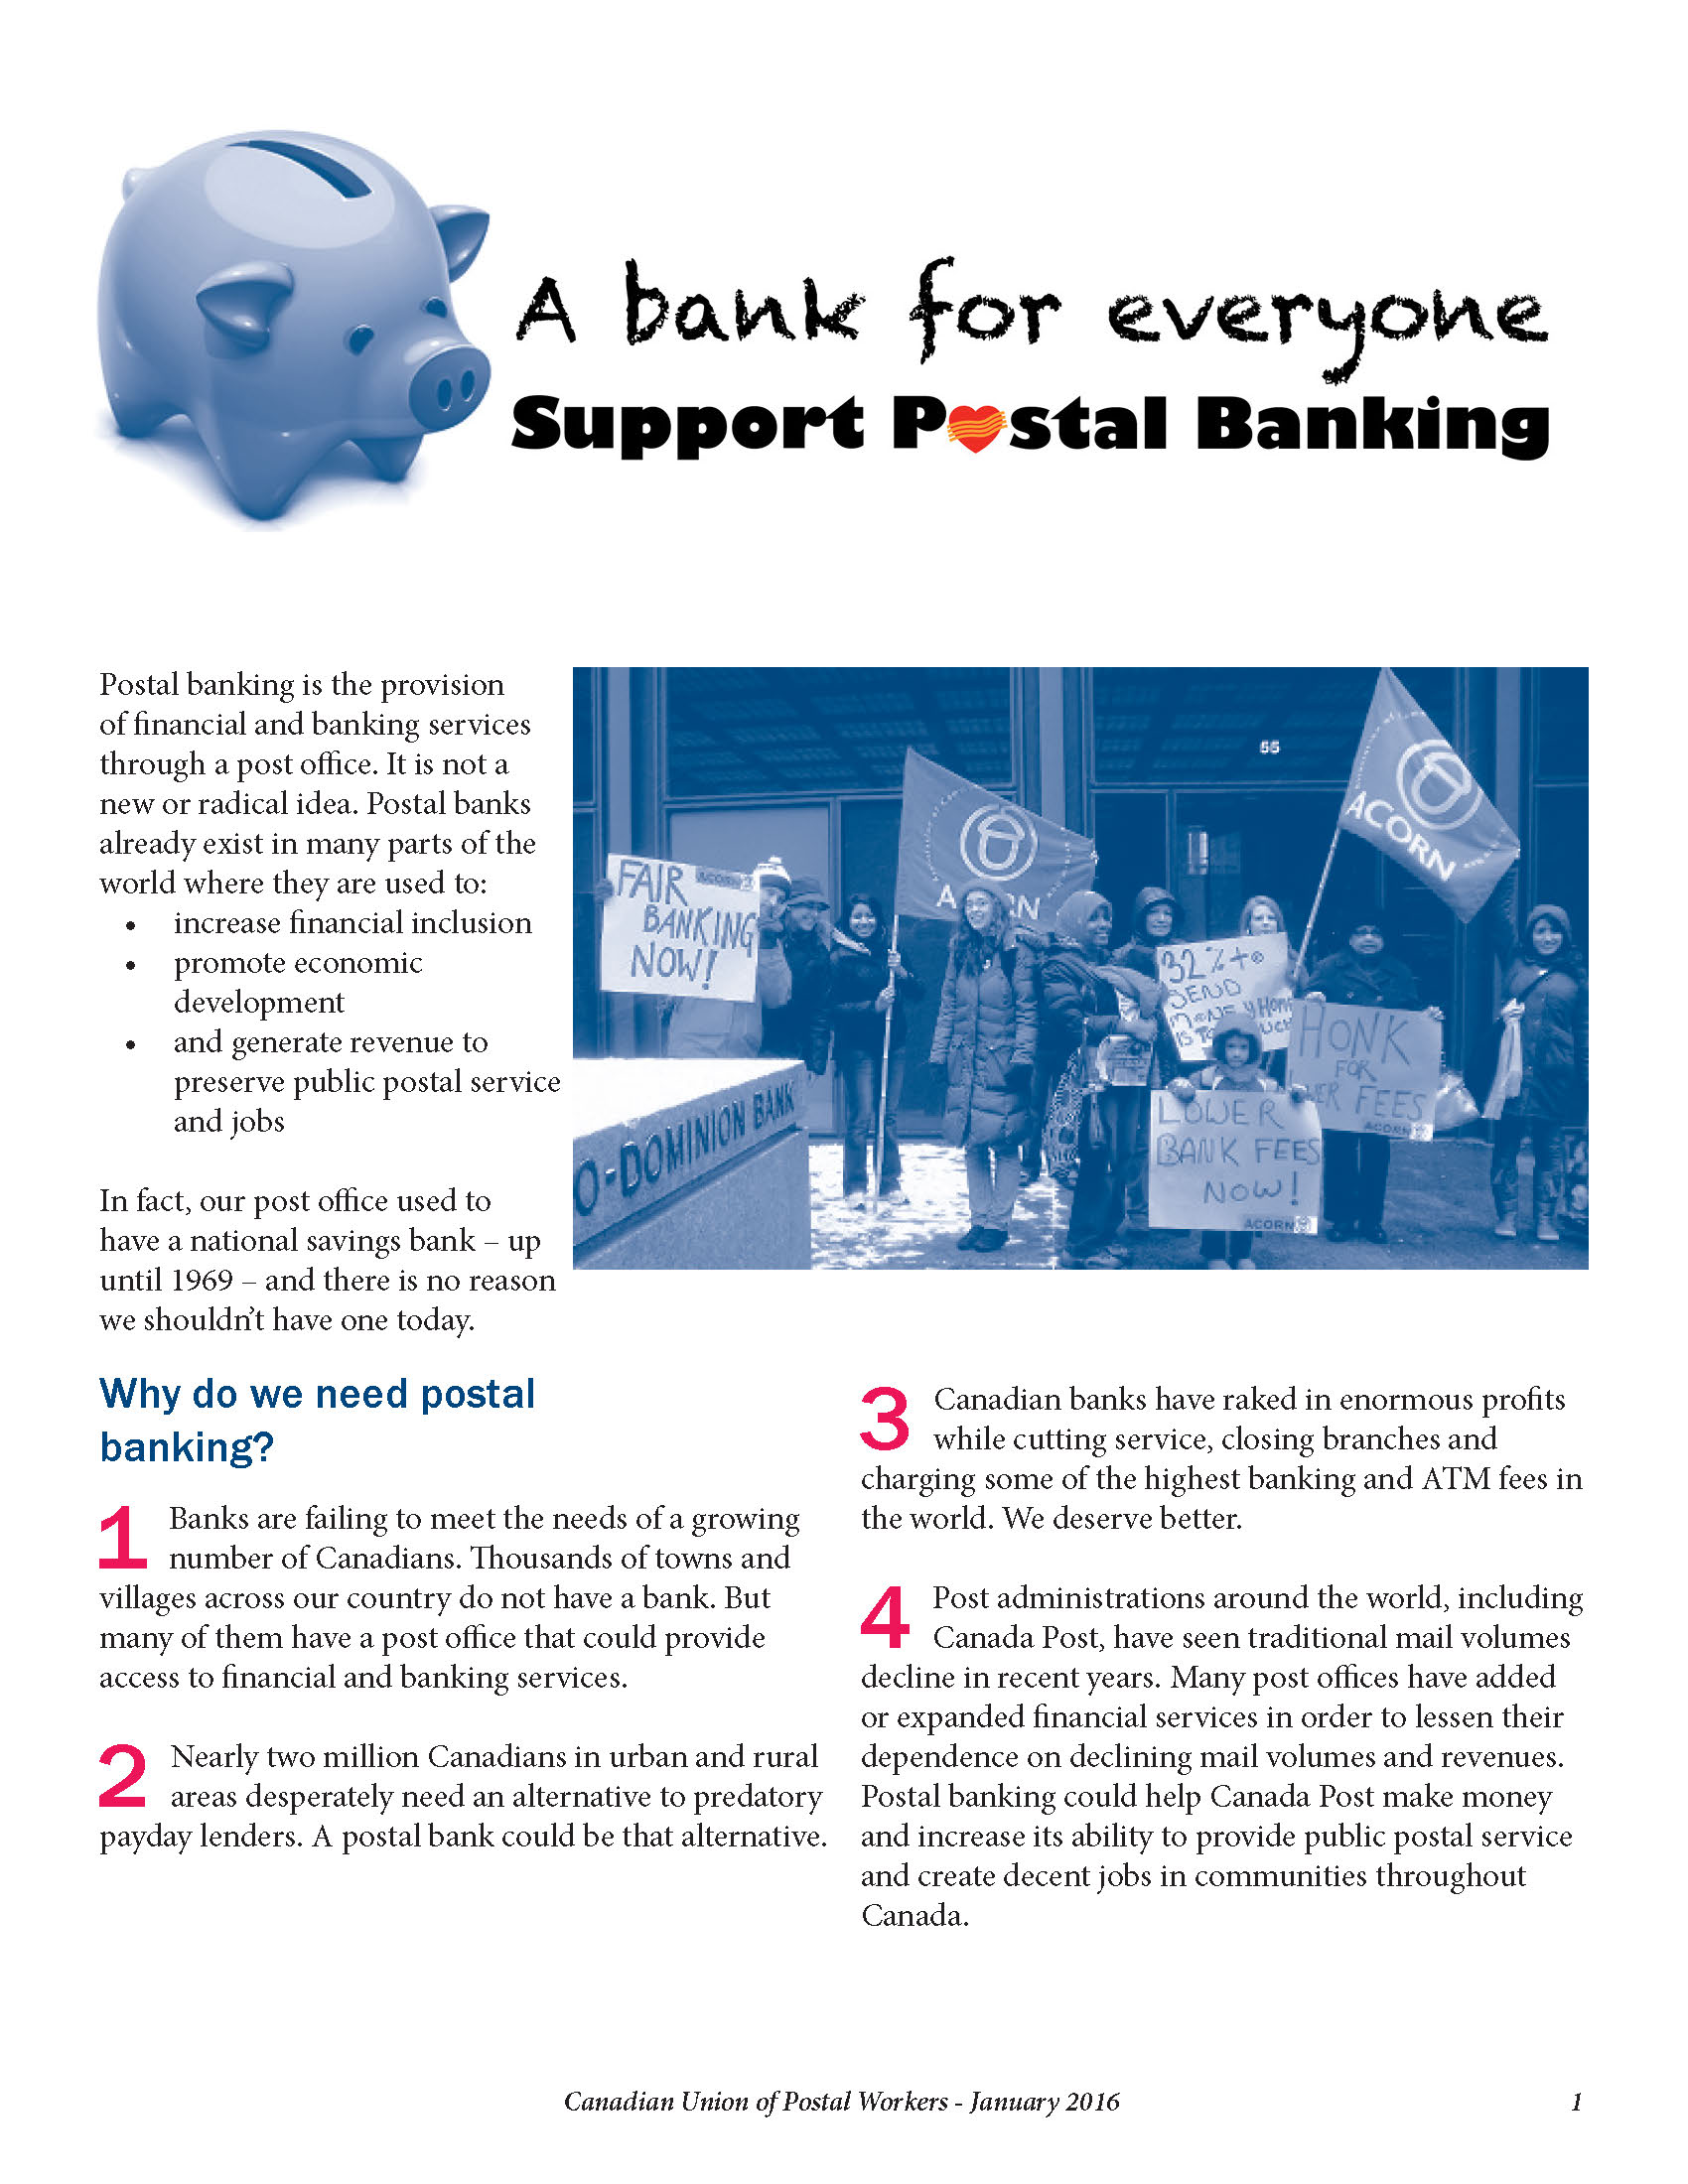 Postal Banking – A Bank for Everyone (Fact Sheet)